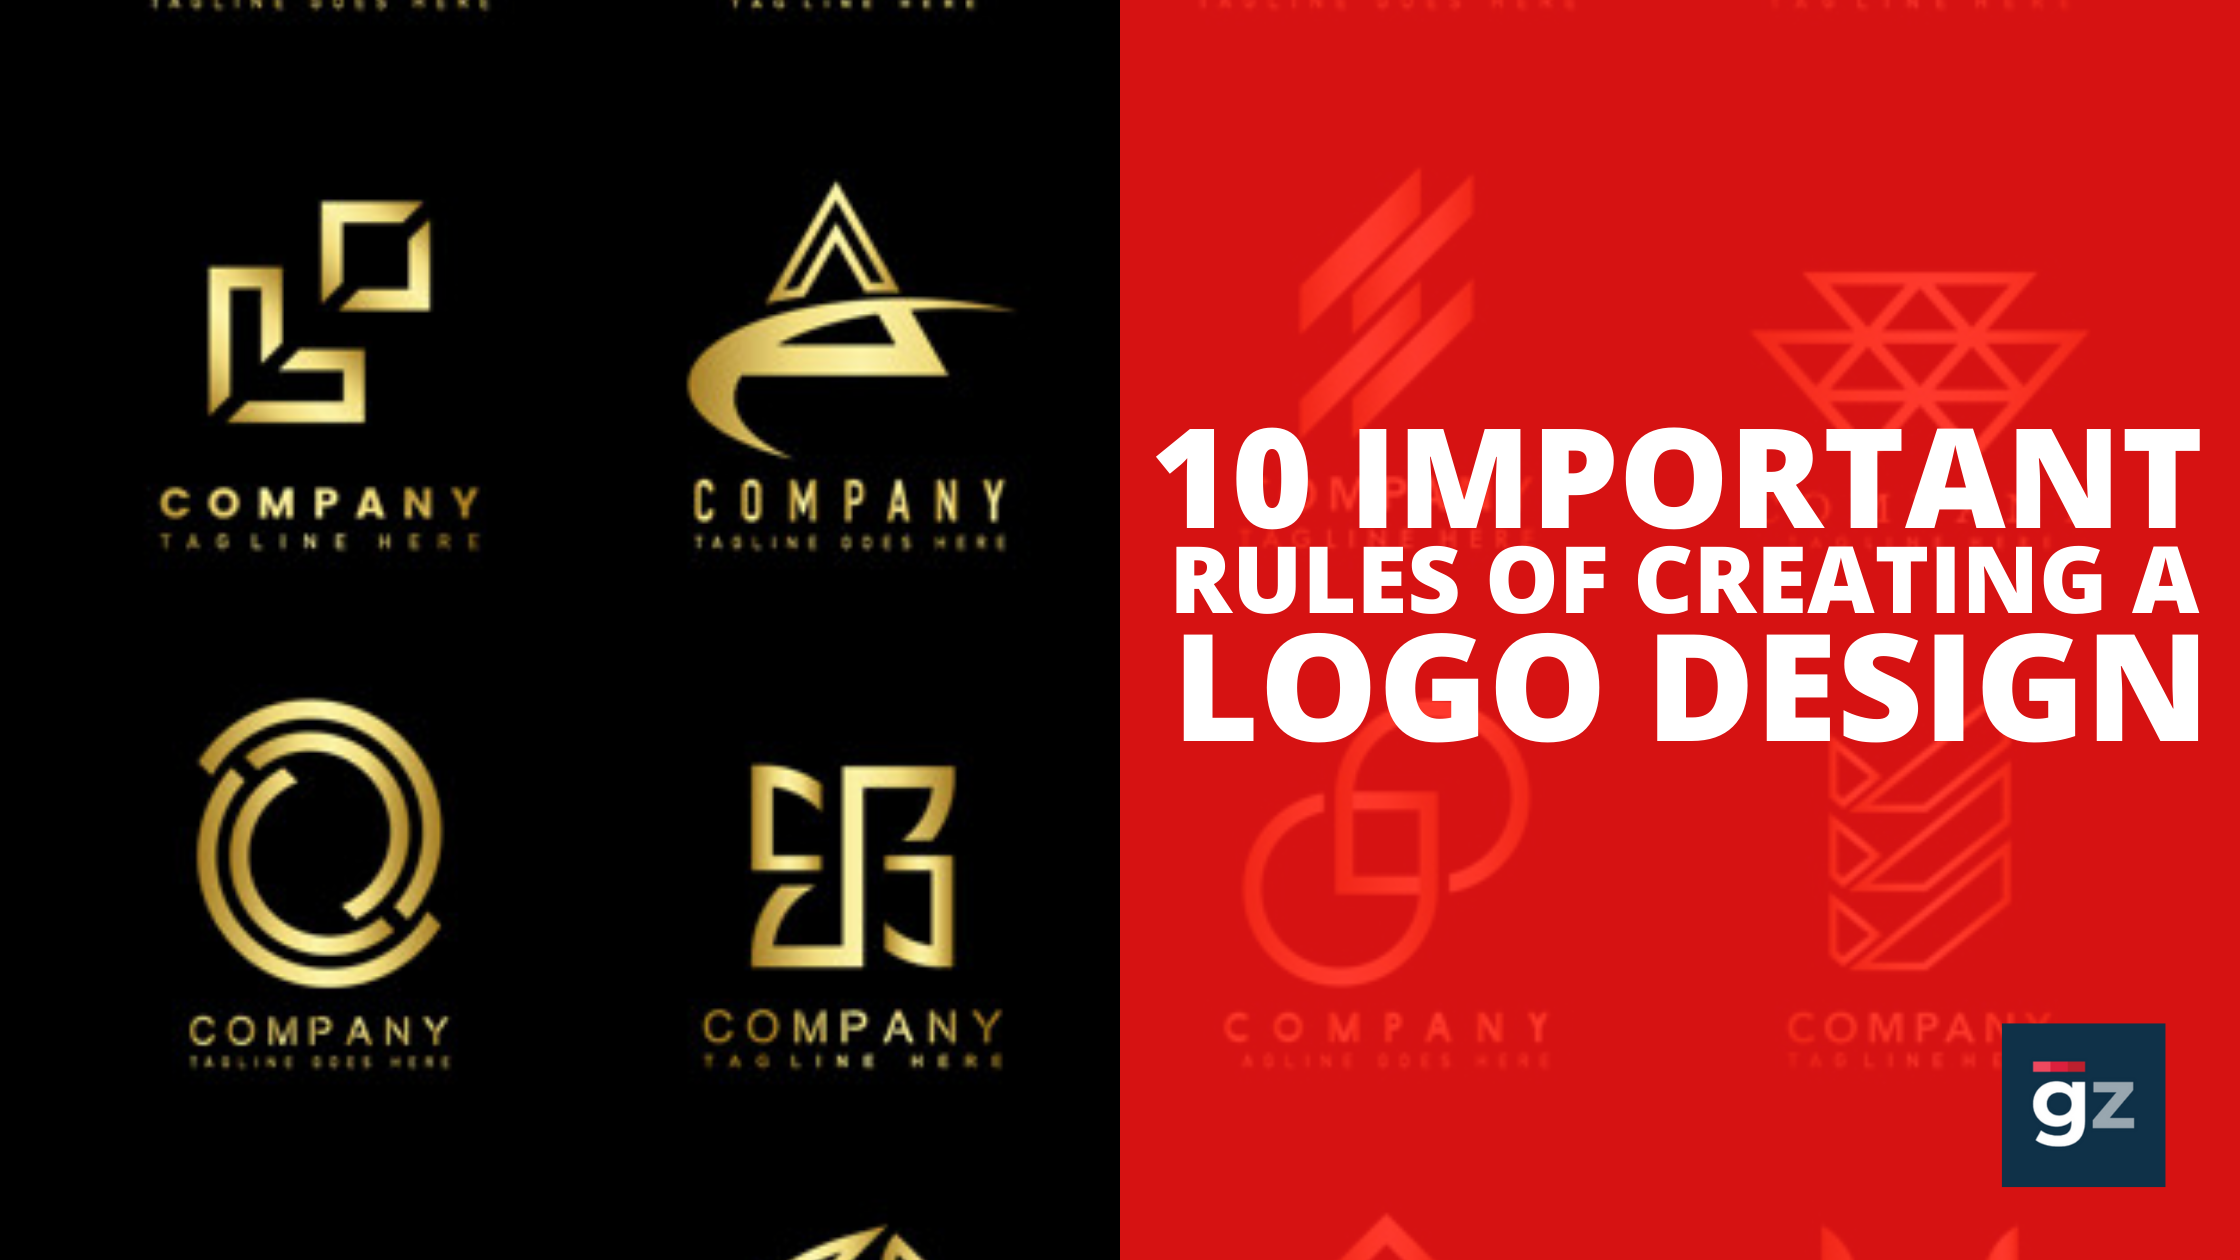 10 Important Rules of Creating a Logo Design